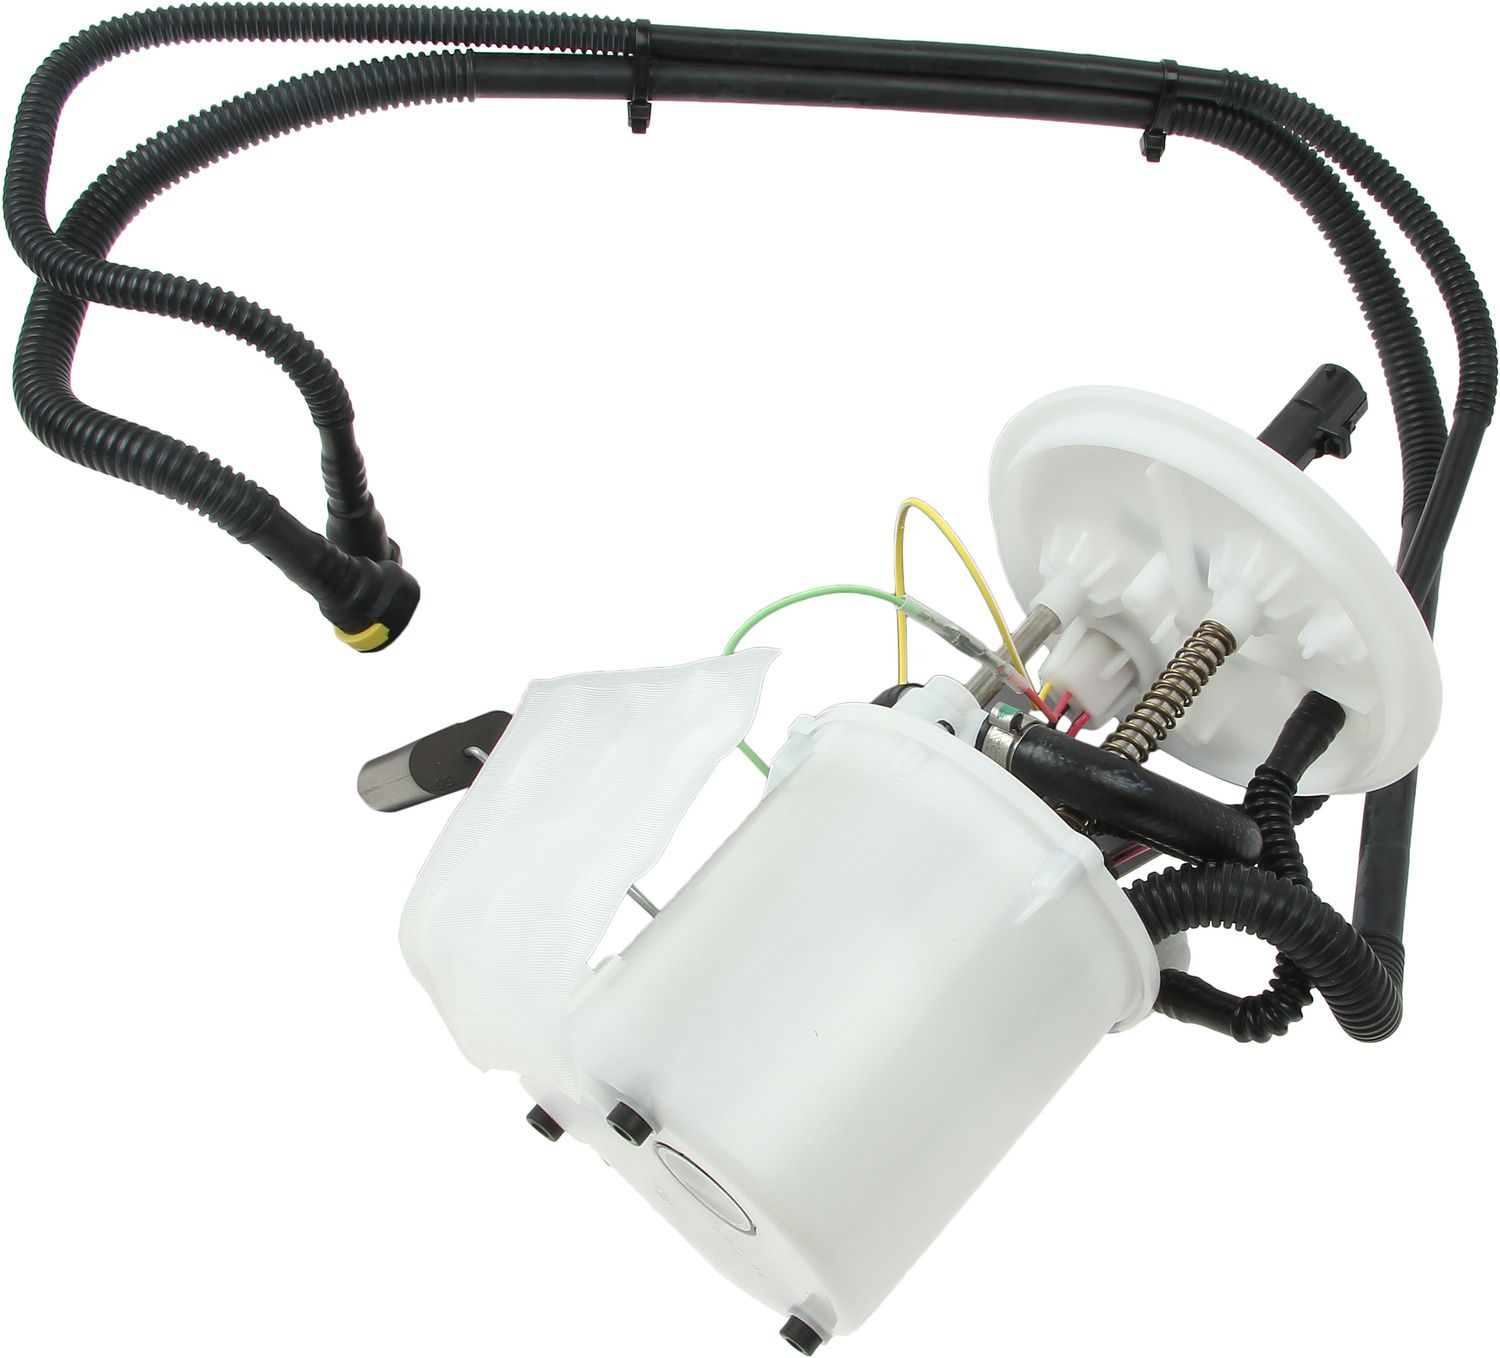 Jaguar X-Type Fuel Pump Module embly Replacement (Airtex ... on